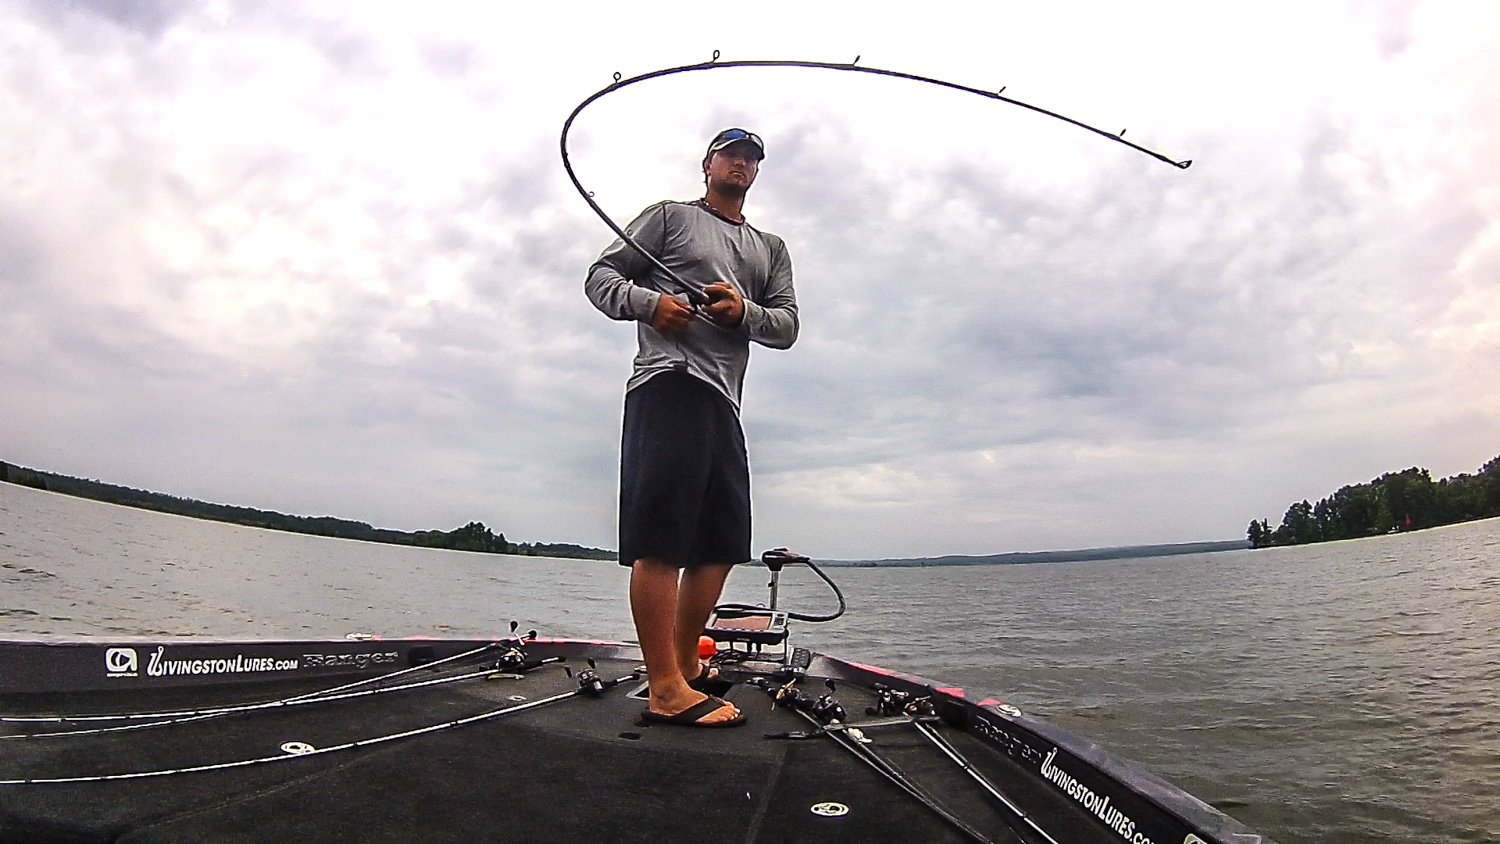 Lake Eufaula Day Two Recap